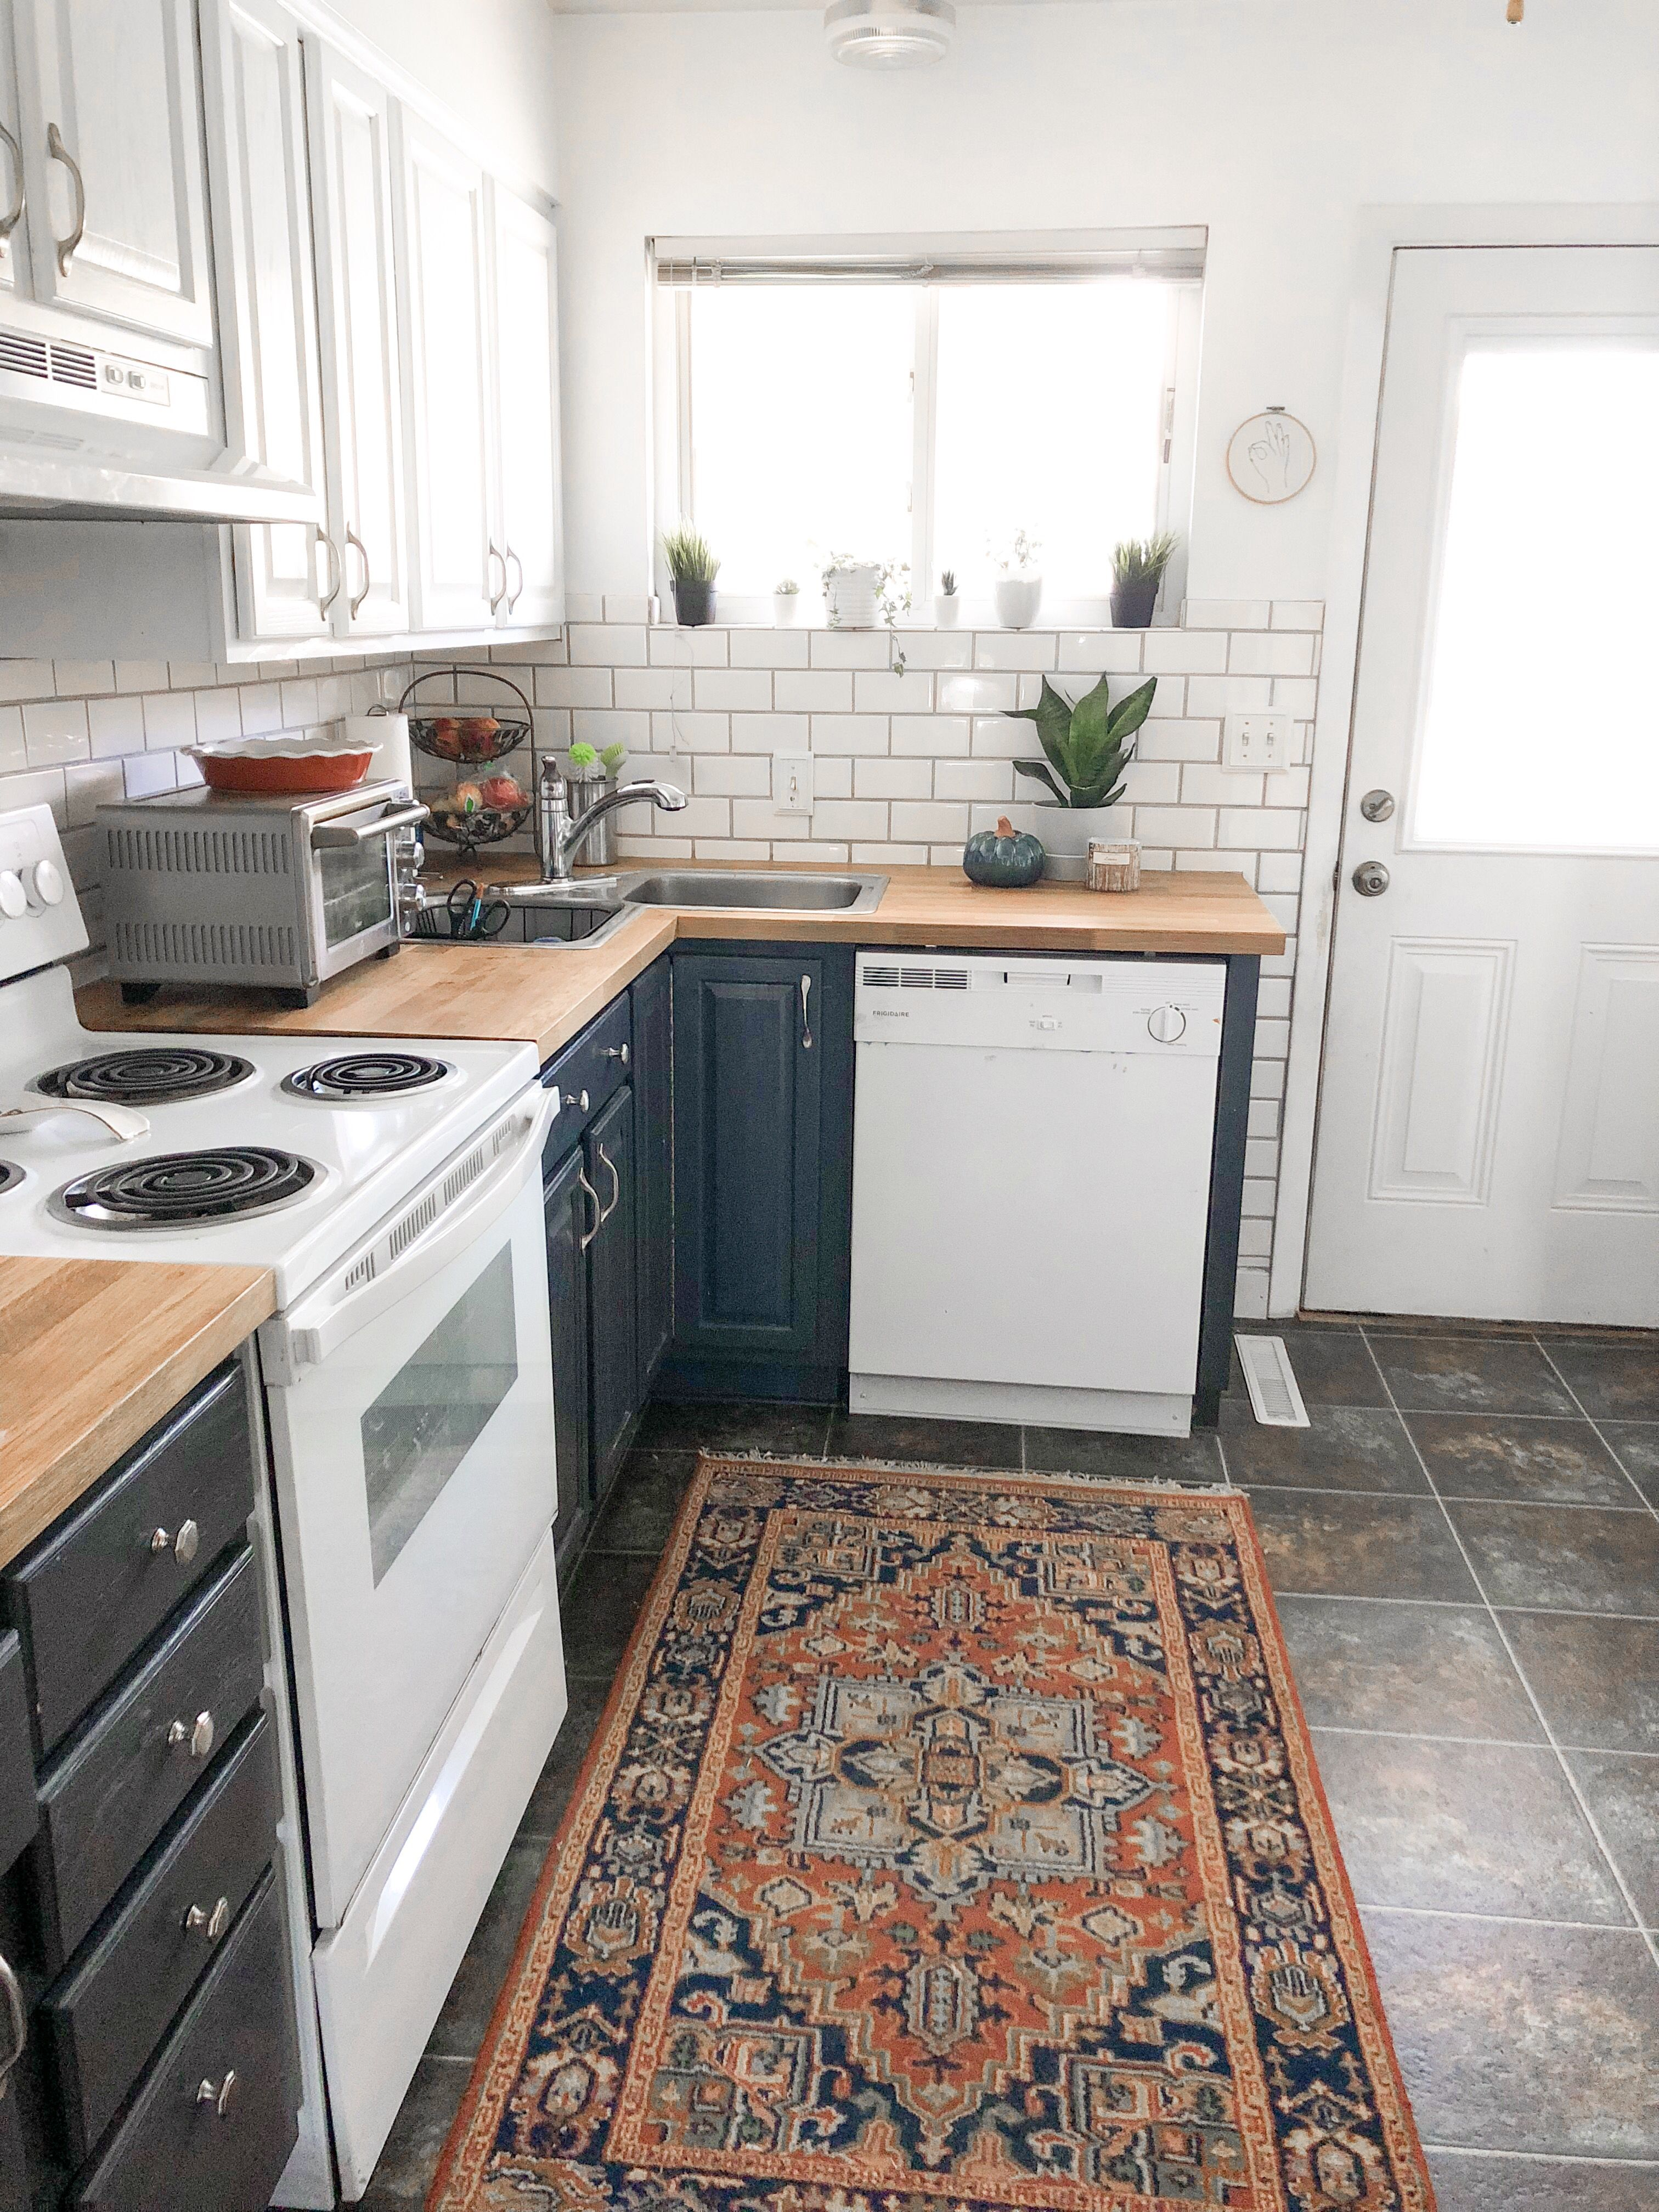 Painted Cabinets With Sherwin Williams Cabinet Enamel And